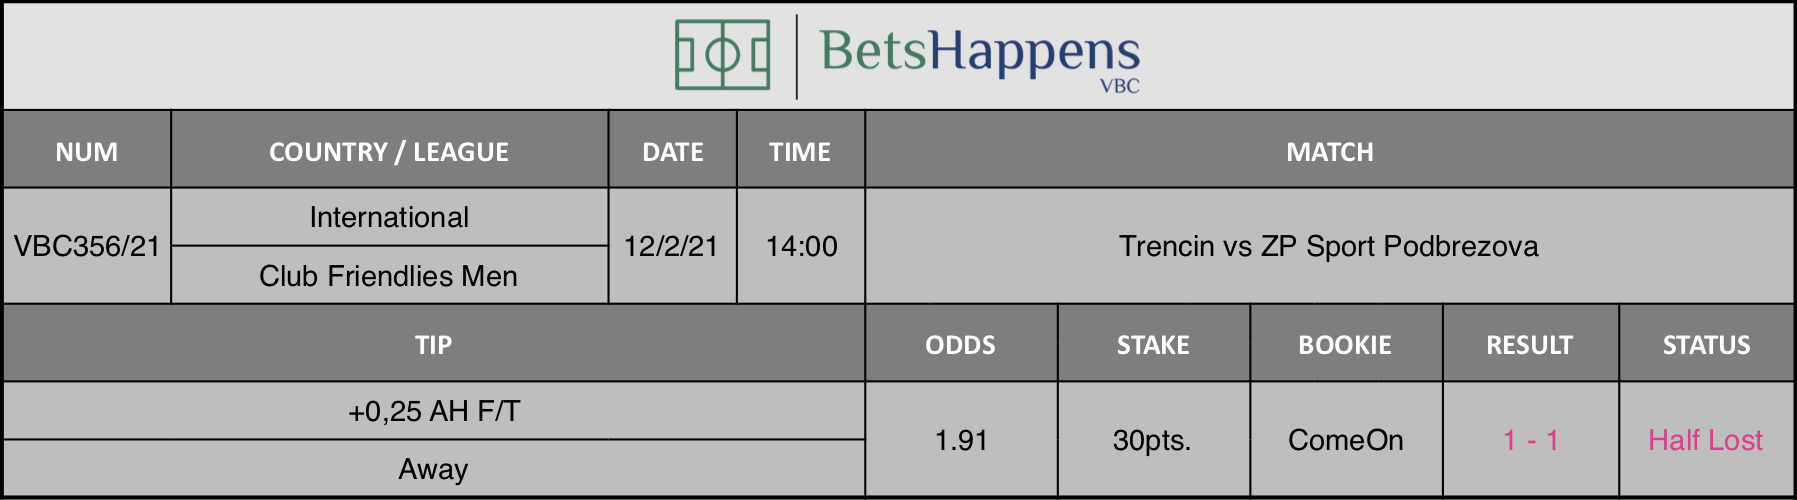 Results of our tip for the Trencin vs ZP Sport Podbrezova match where +0,25 AH F/T - Away is recommended.